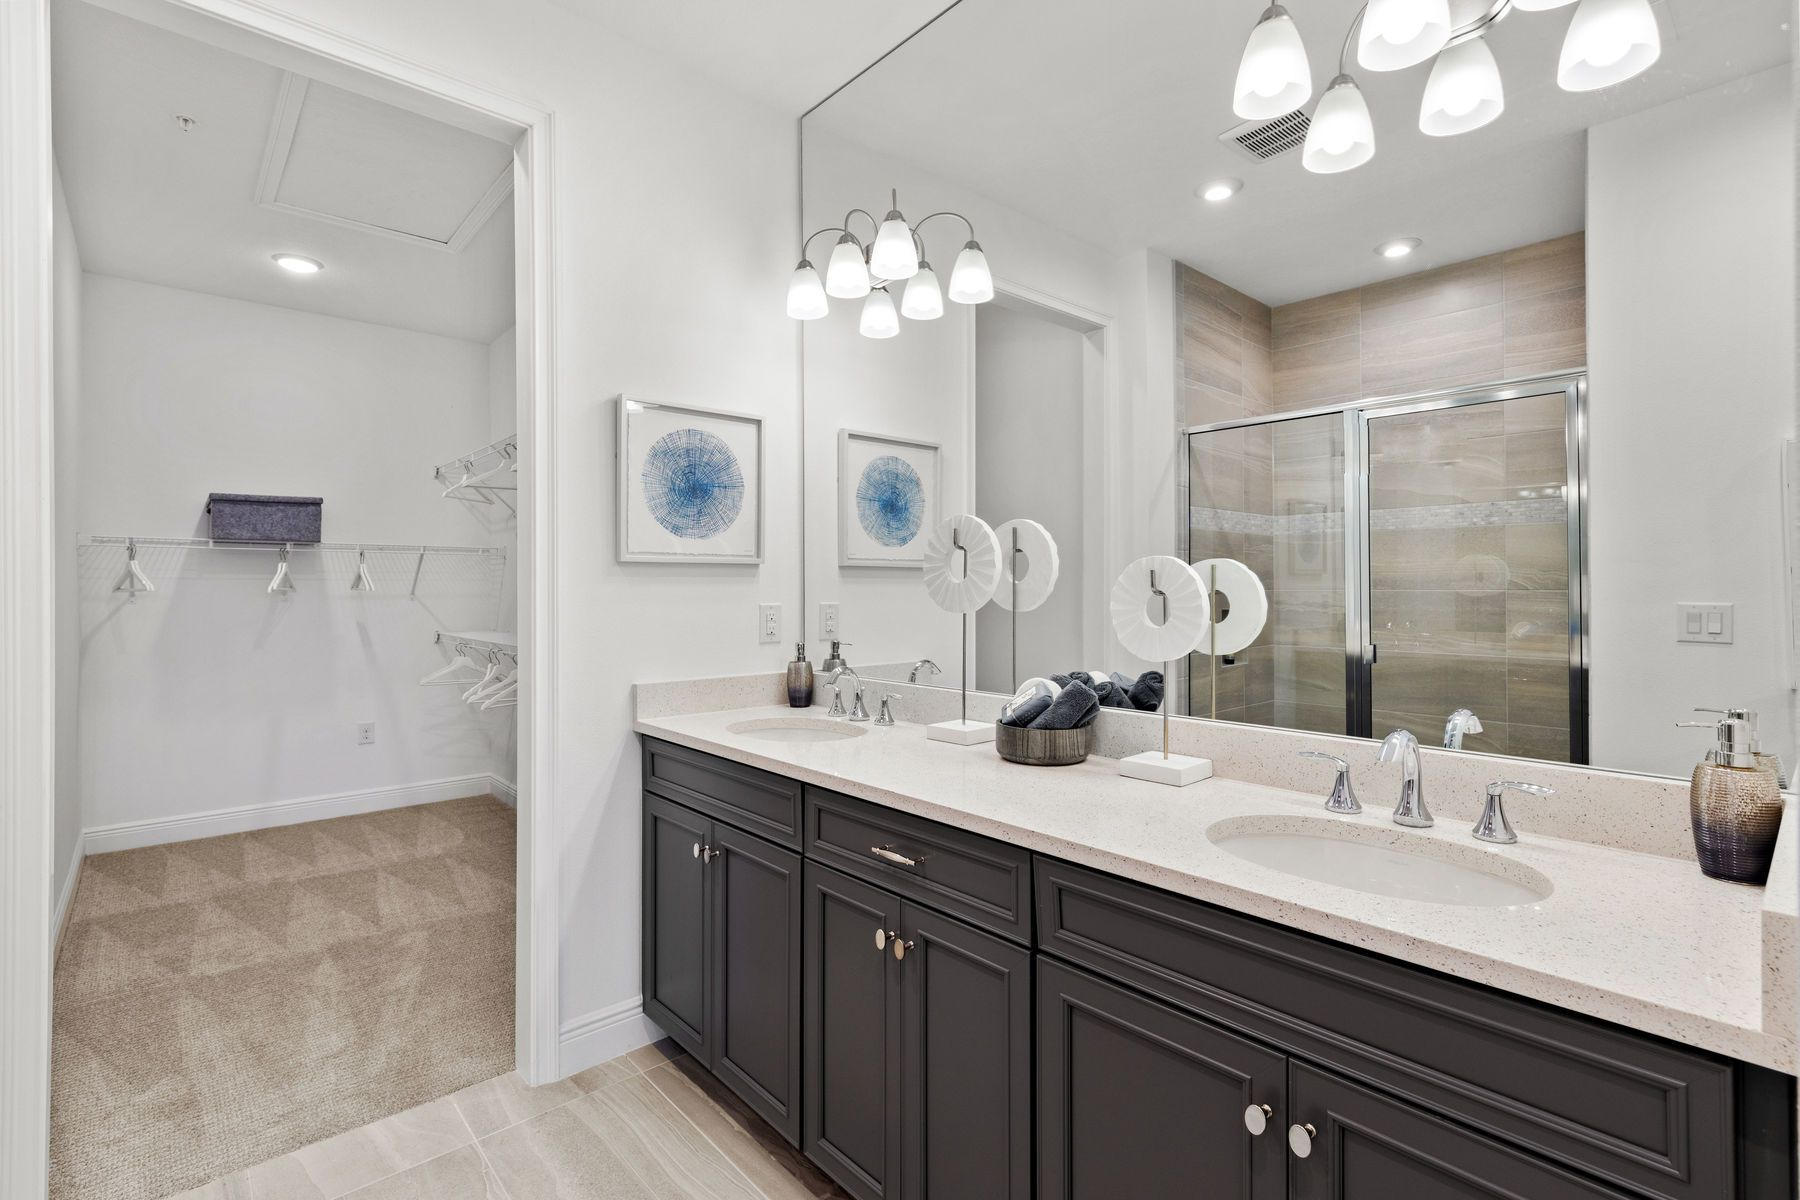 Bathroom featured in the Captiva II By Mattamy Homes in Naples, FL